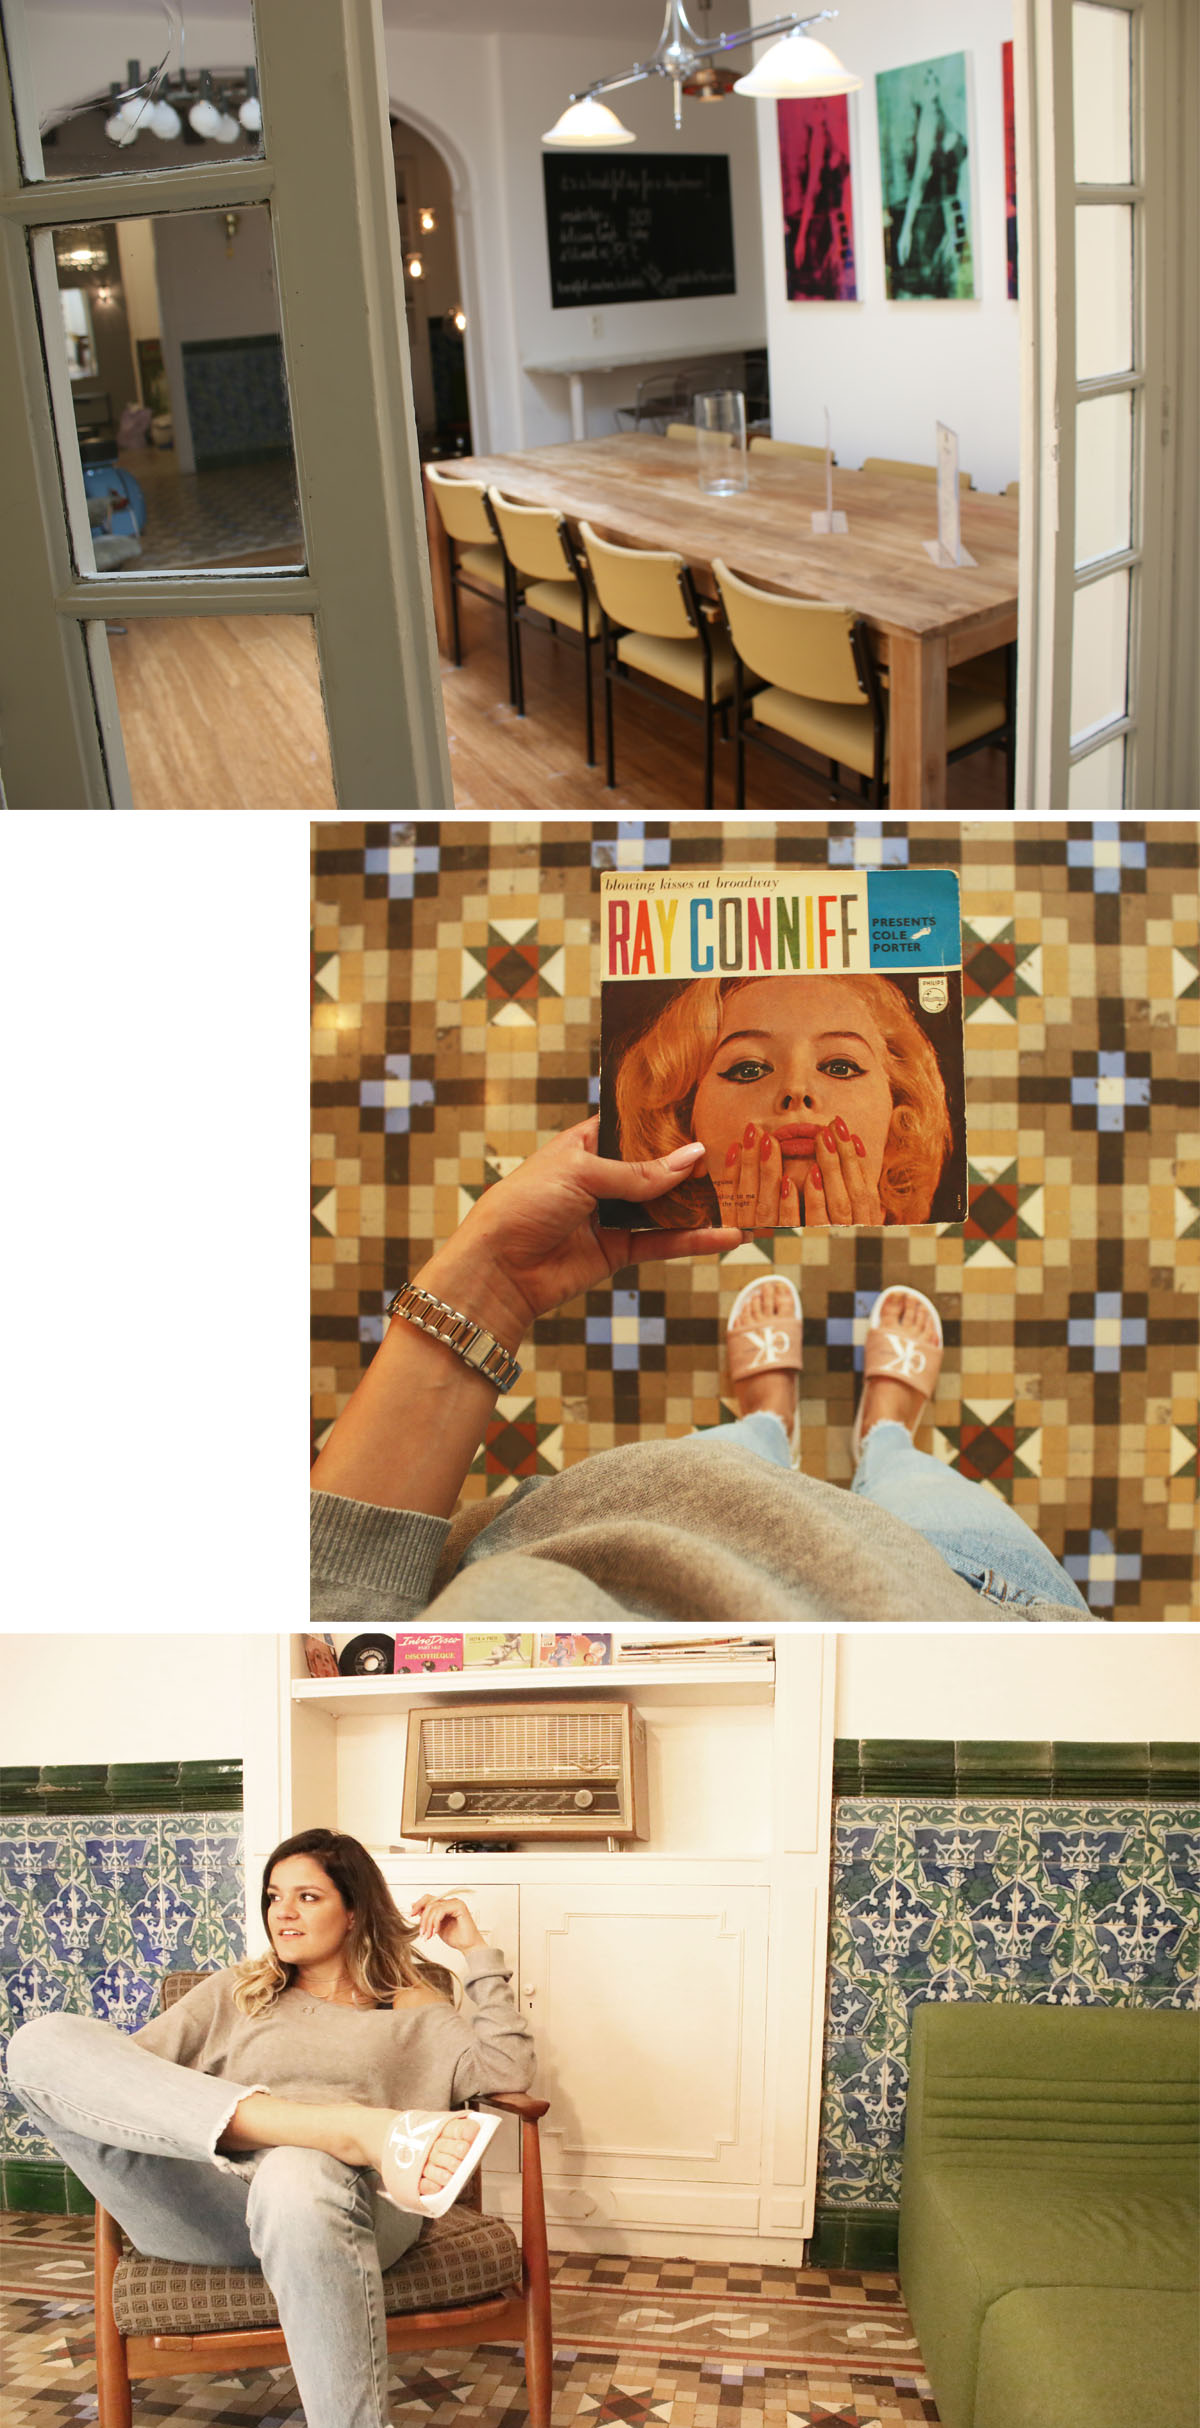 retrome-hotel-barcelona-retro-interior-ray-conniff-album-calvin-klein-slippers-cool-hotel-barcelona-hotel-review-barcelona